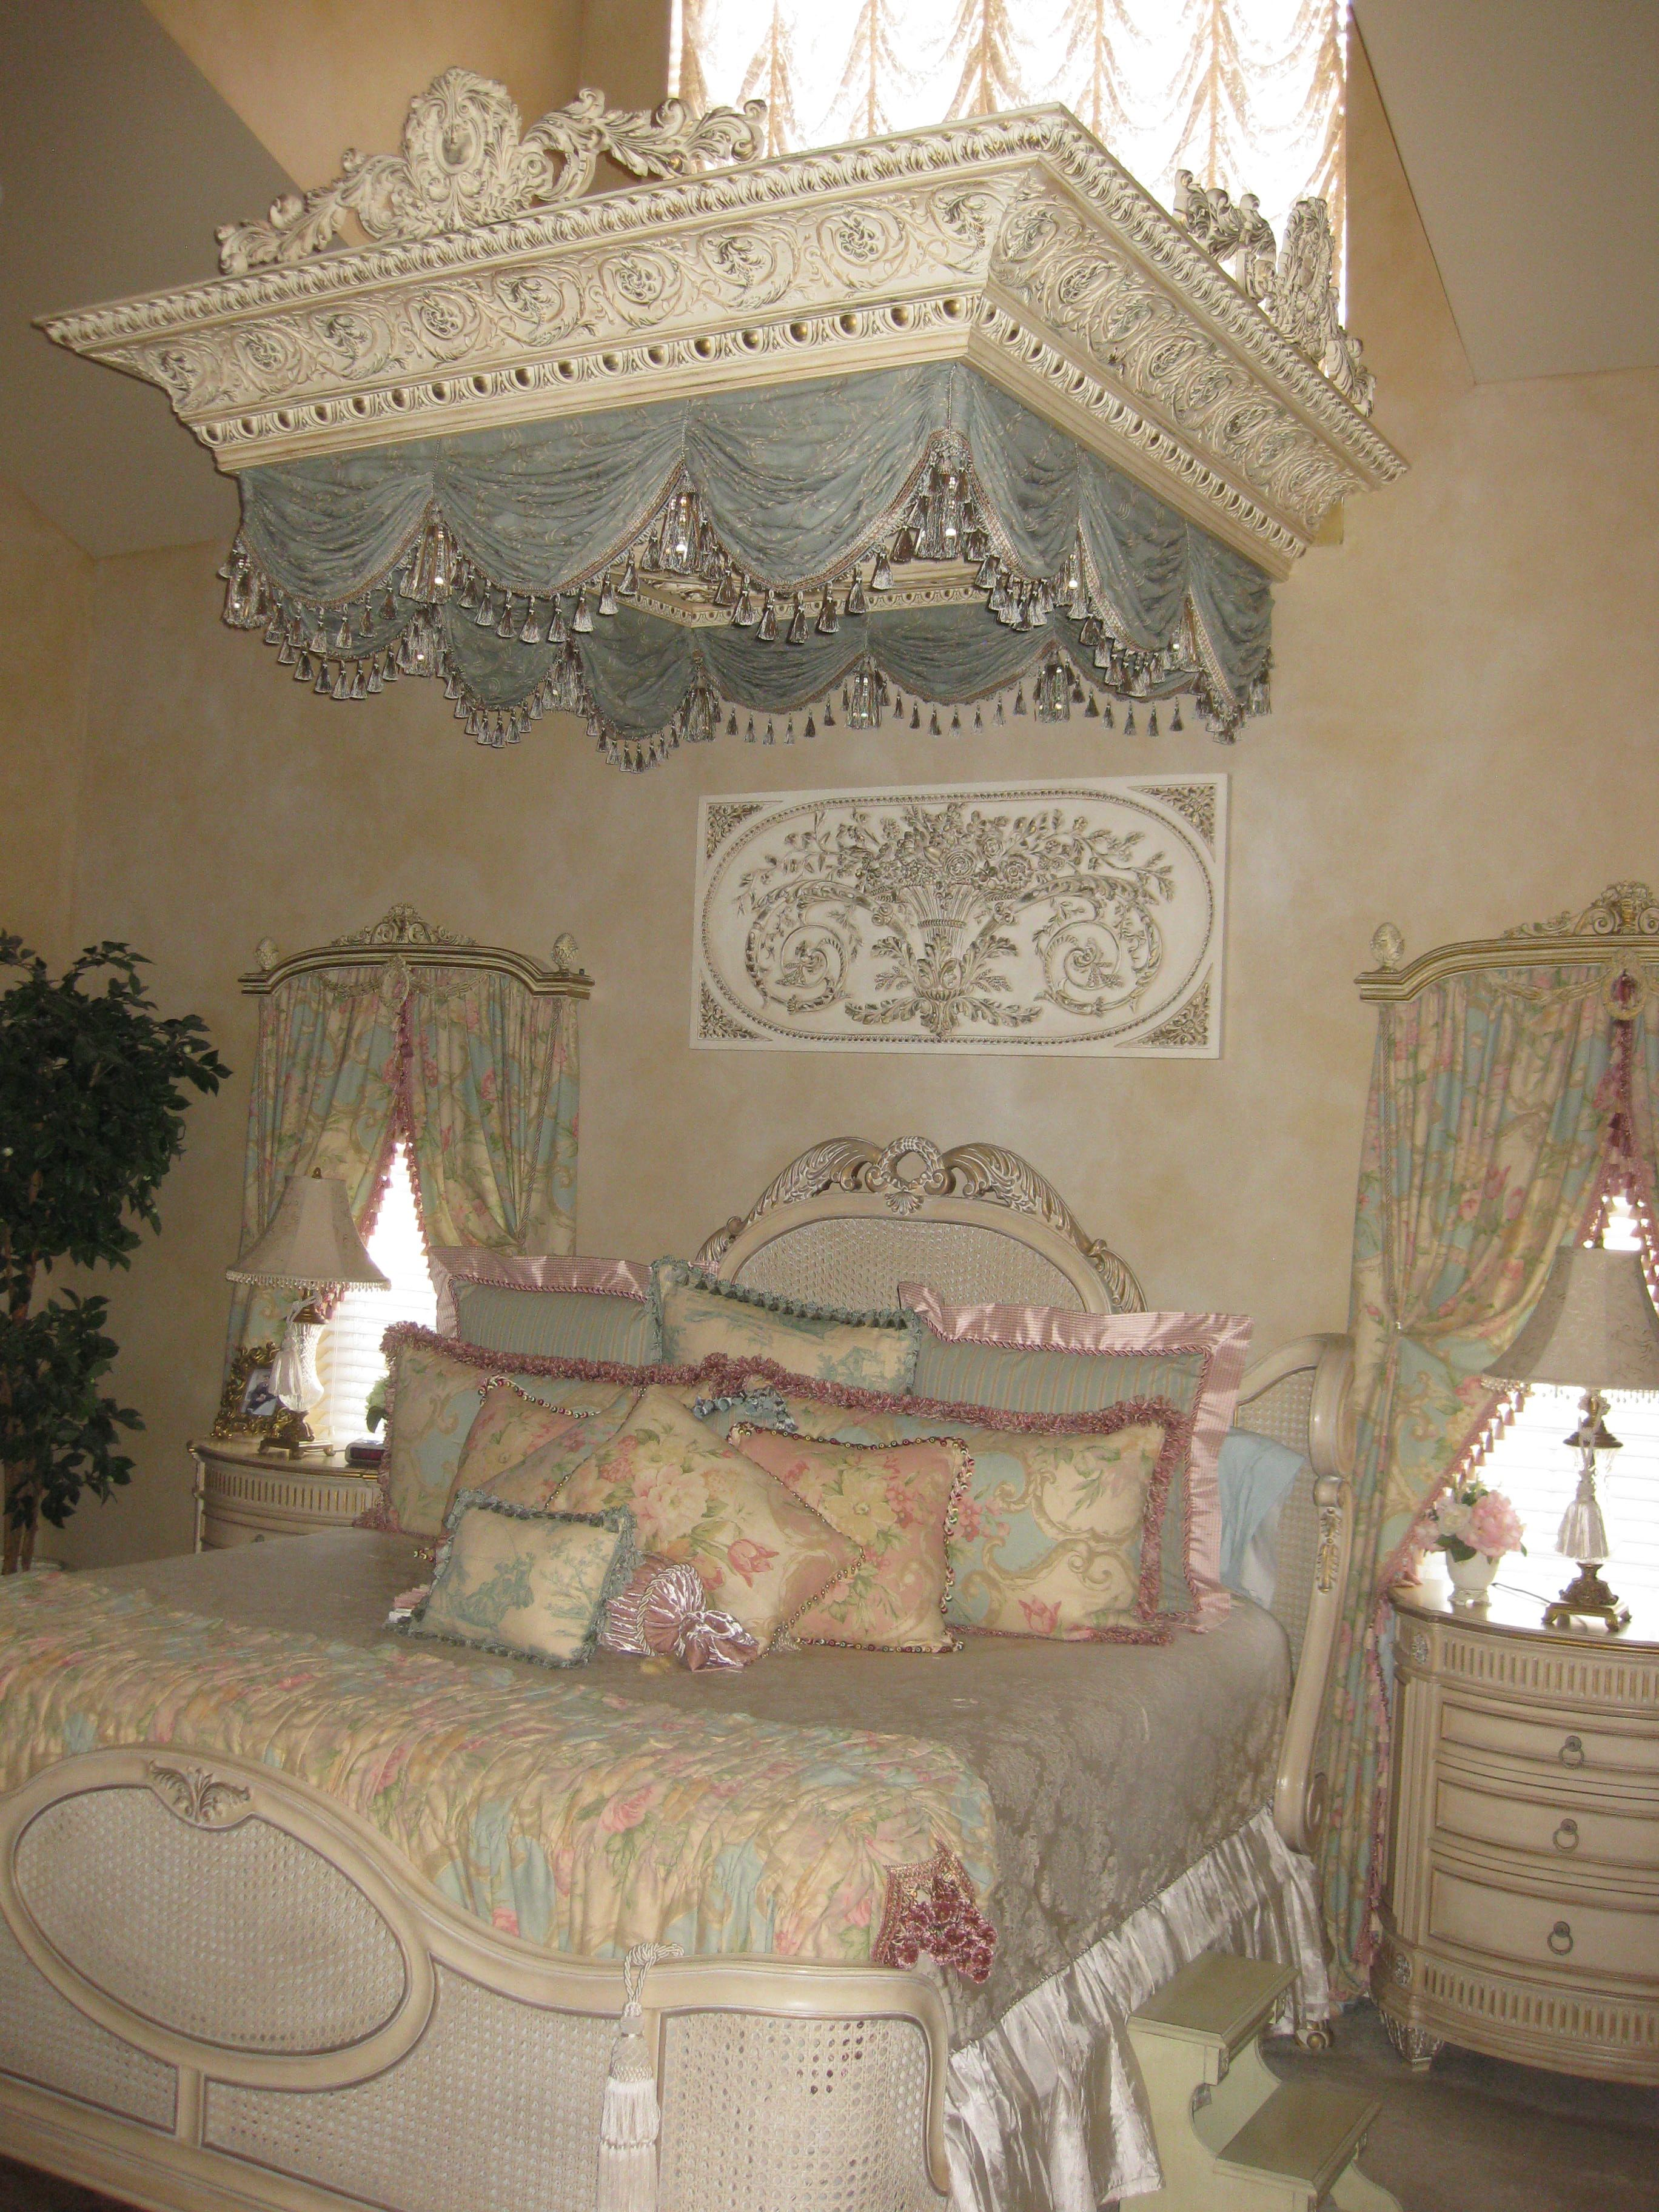 ... With Zampella Designed This Custom Bed Canopy Using A Large Crown ...